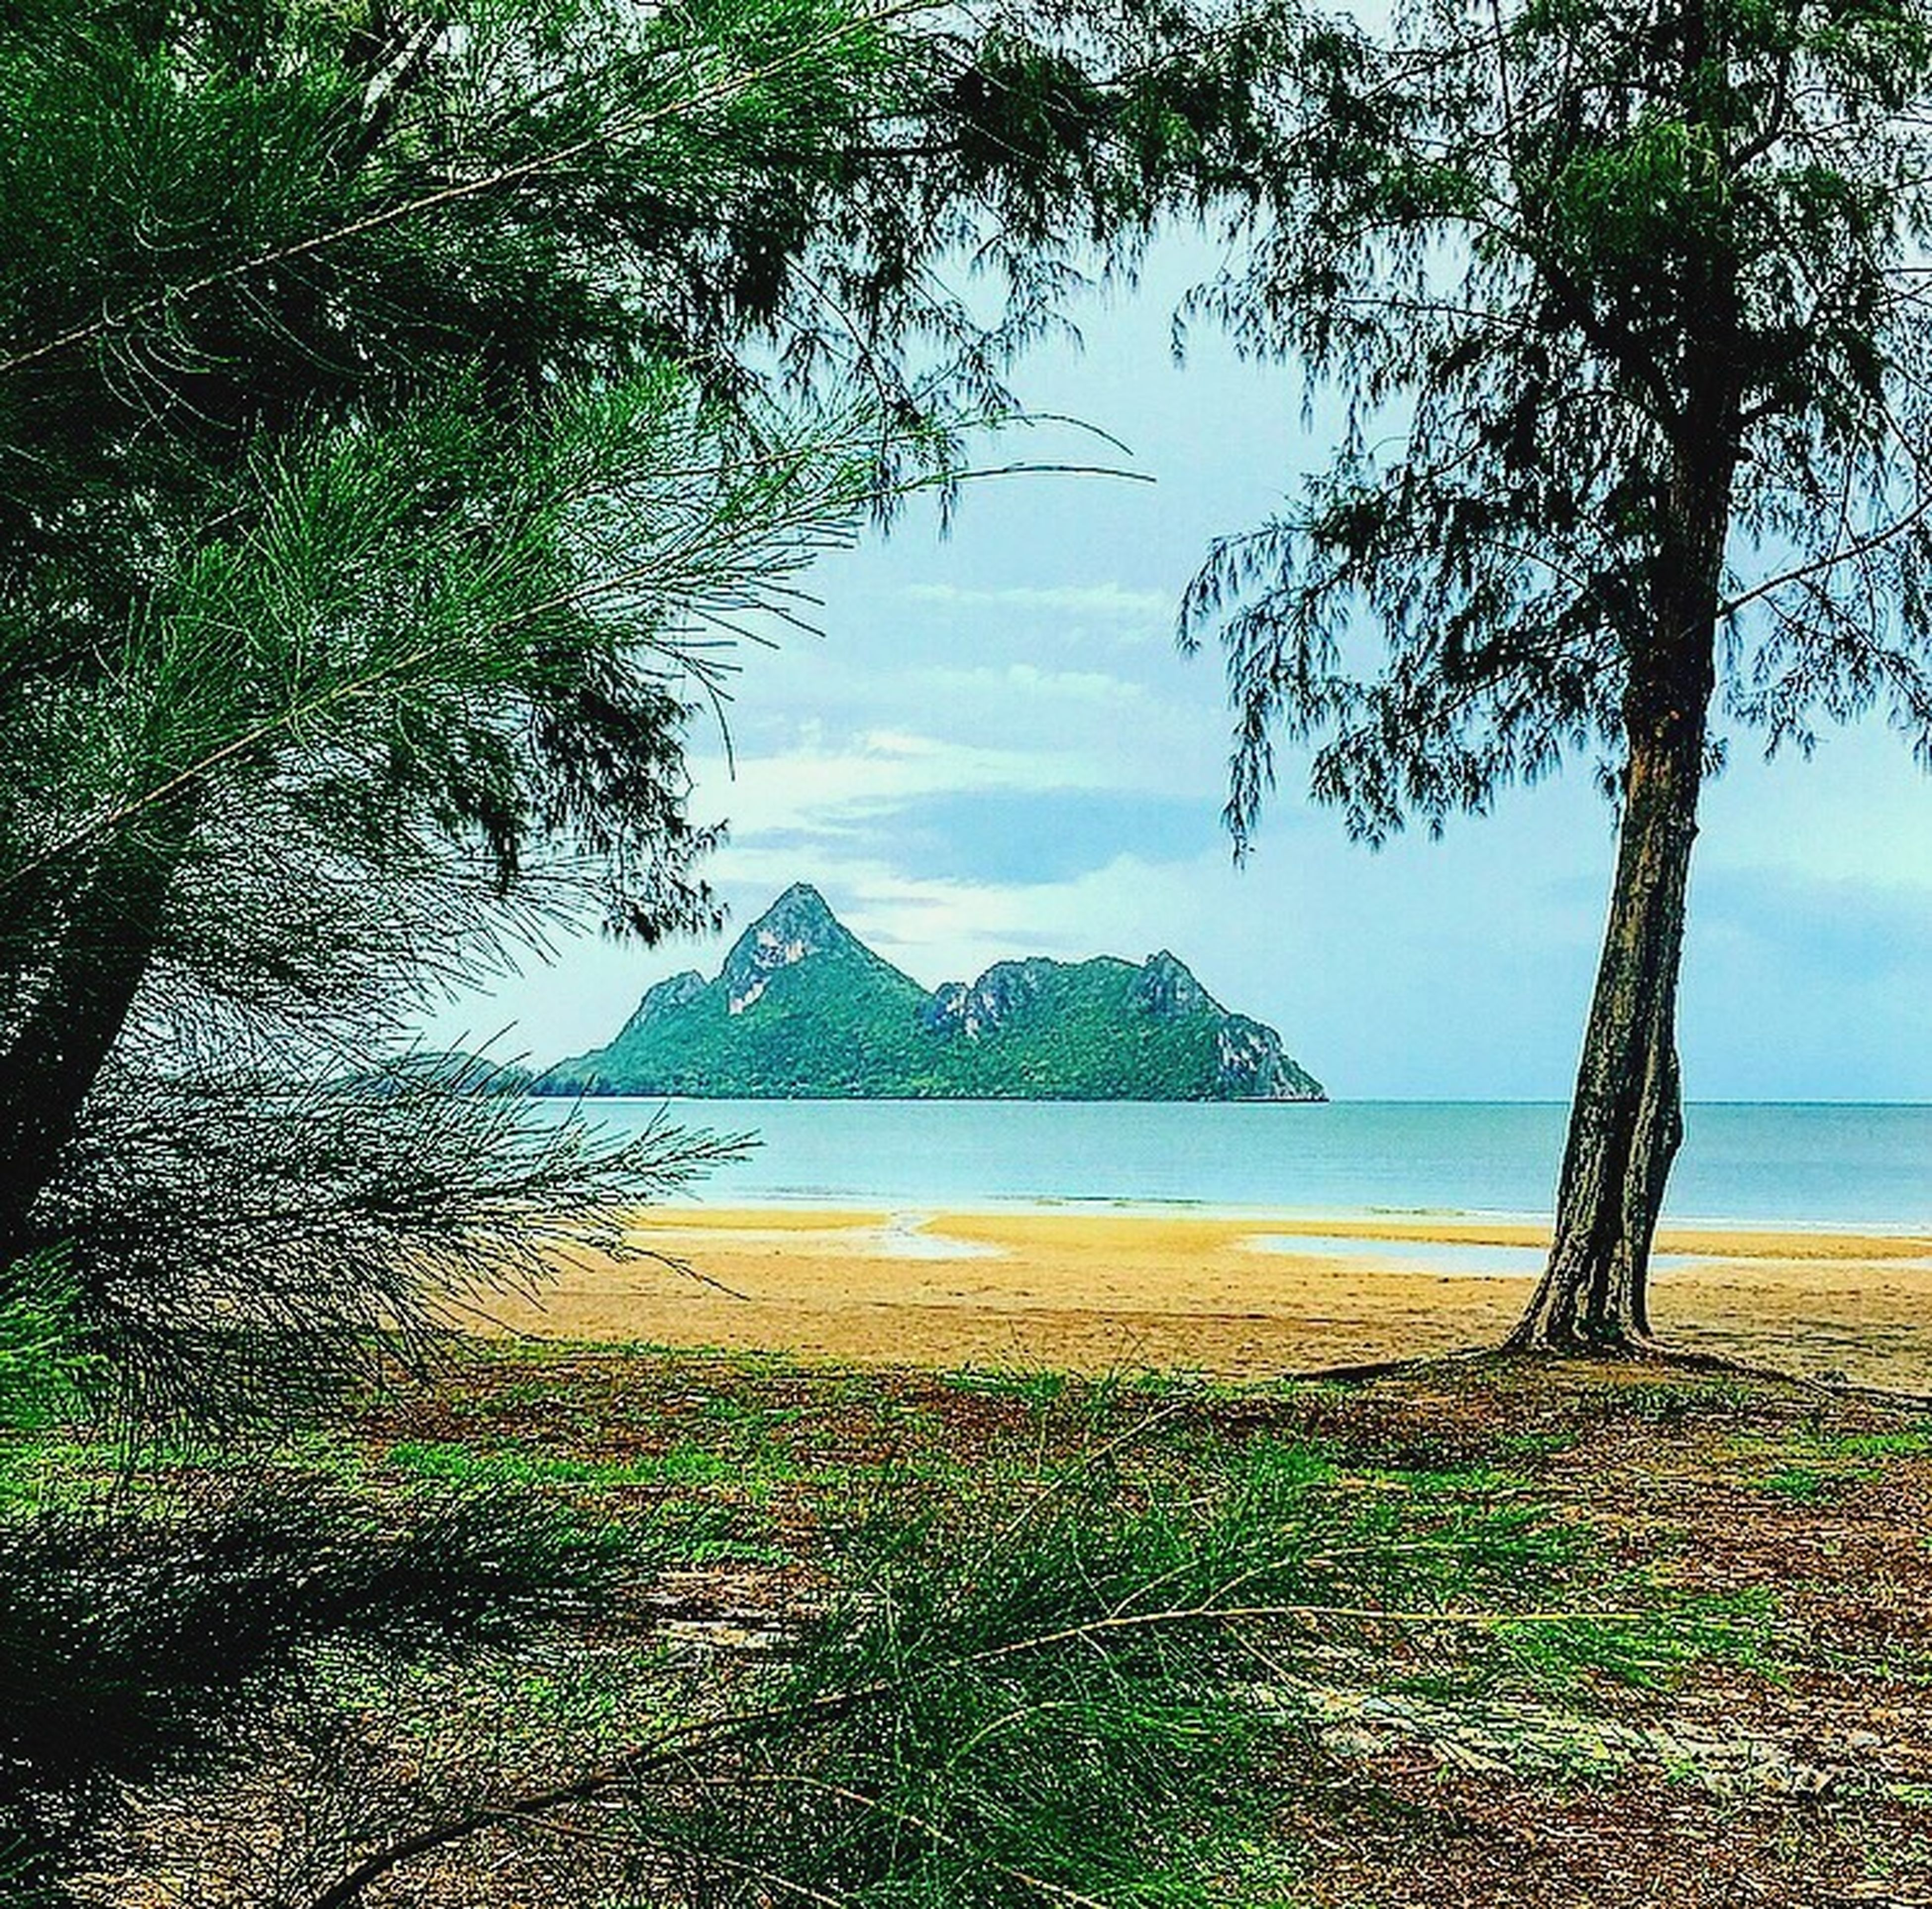 tree, water, sea, tranquil scene, scenics, tranquility, sky, branch, beach, lake, tree trunk, beauty in nature, green color, nature, growth, blue, mountain, non-urban scene, day, shore, distant, coastline, outdoors, tourism, no people, vacations, seascape, remote